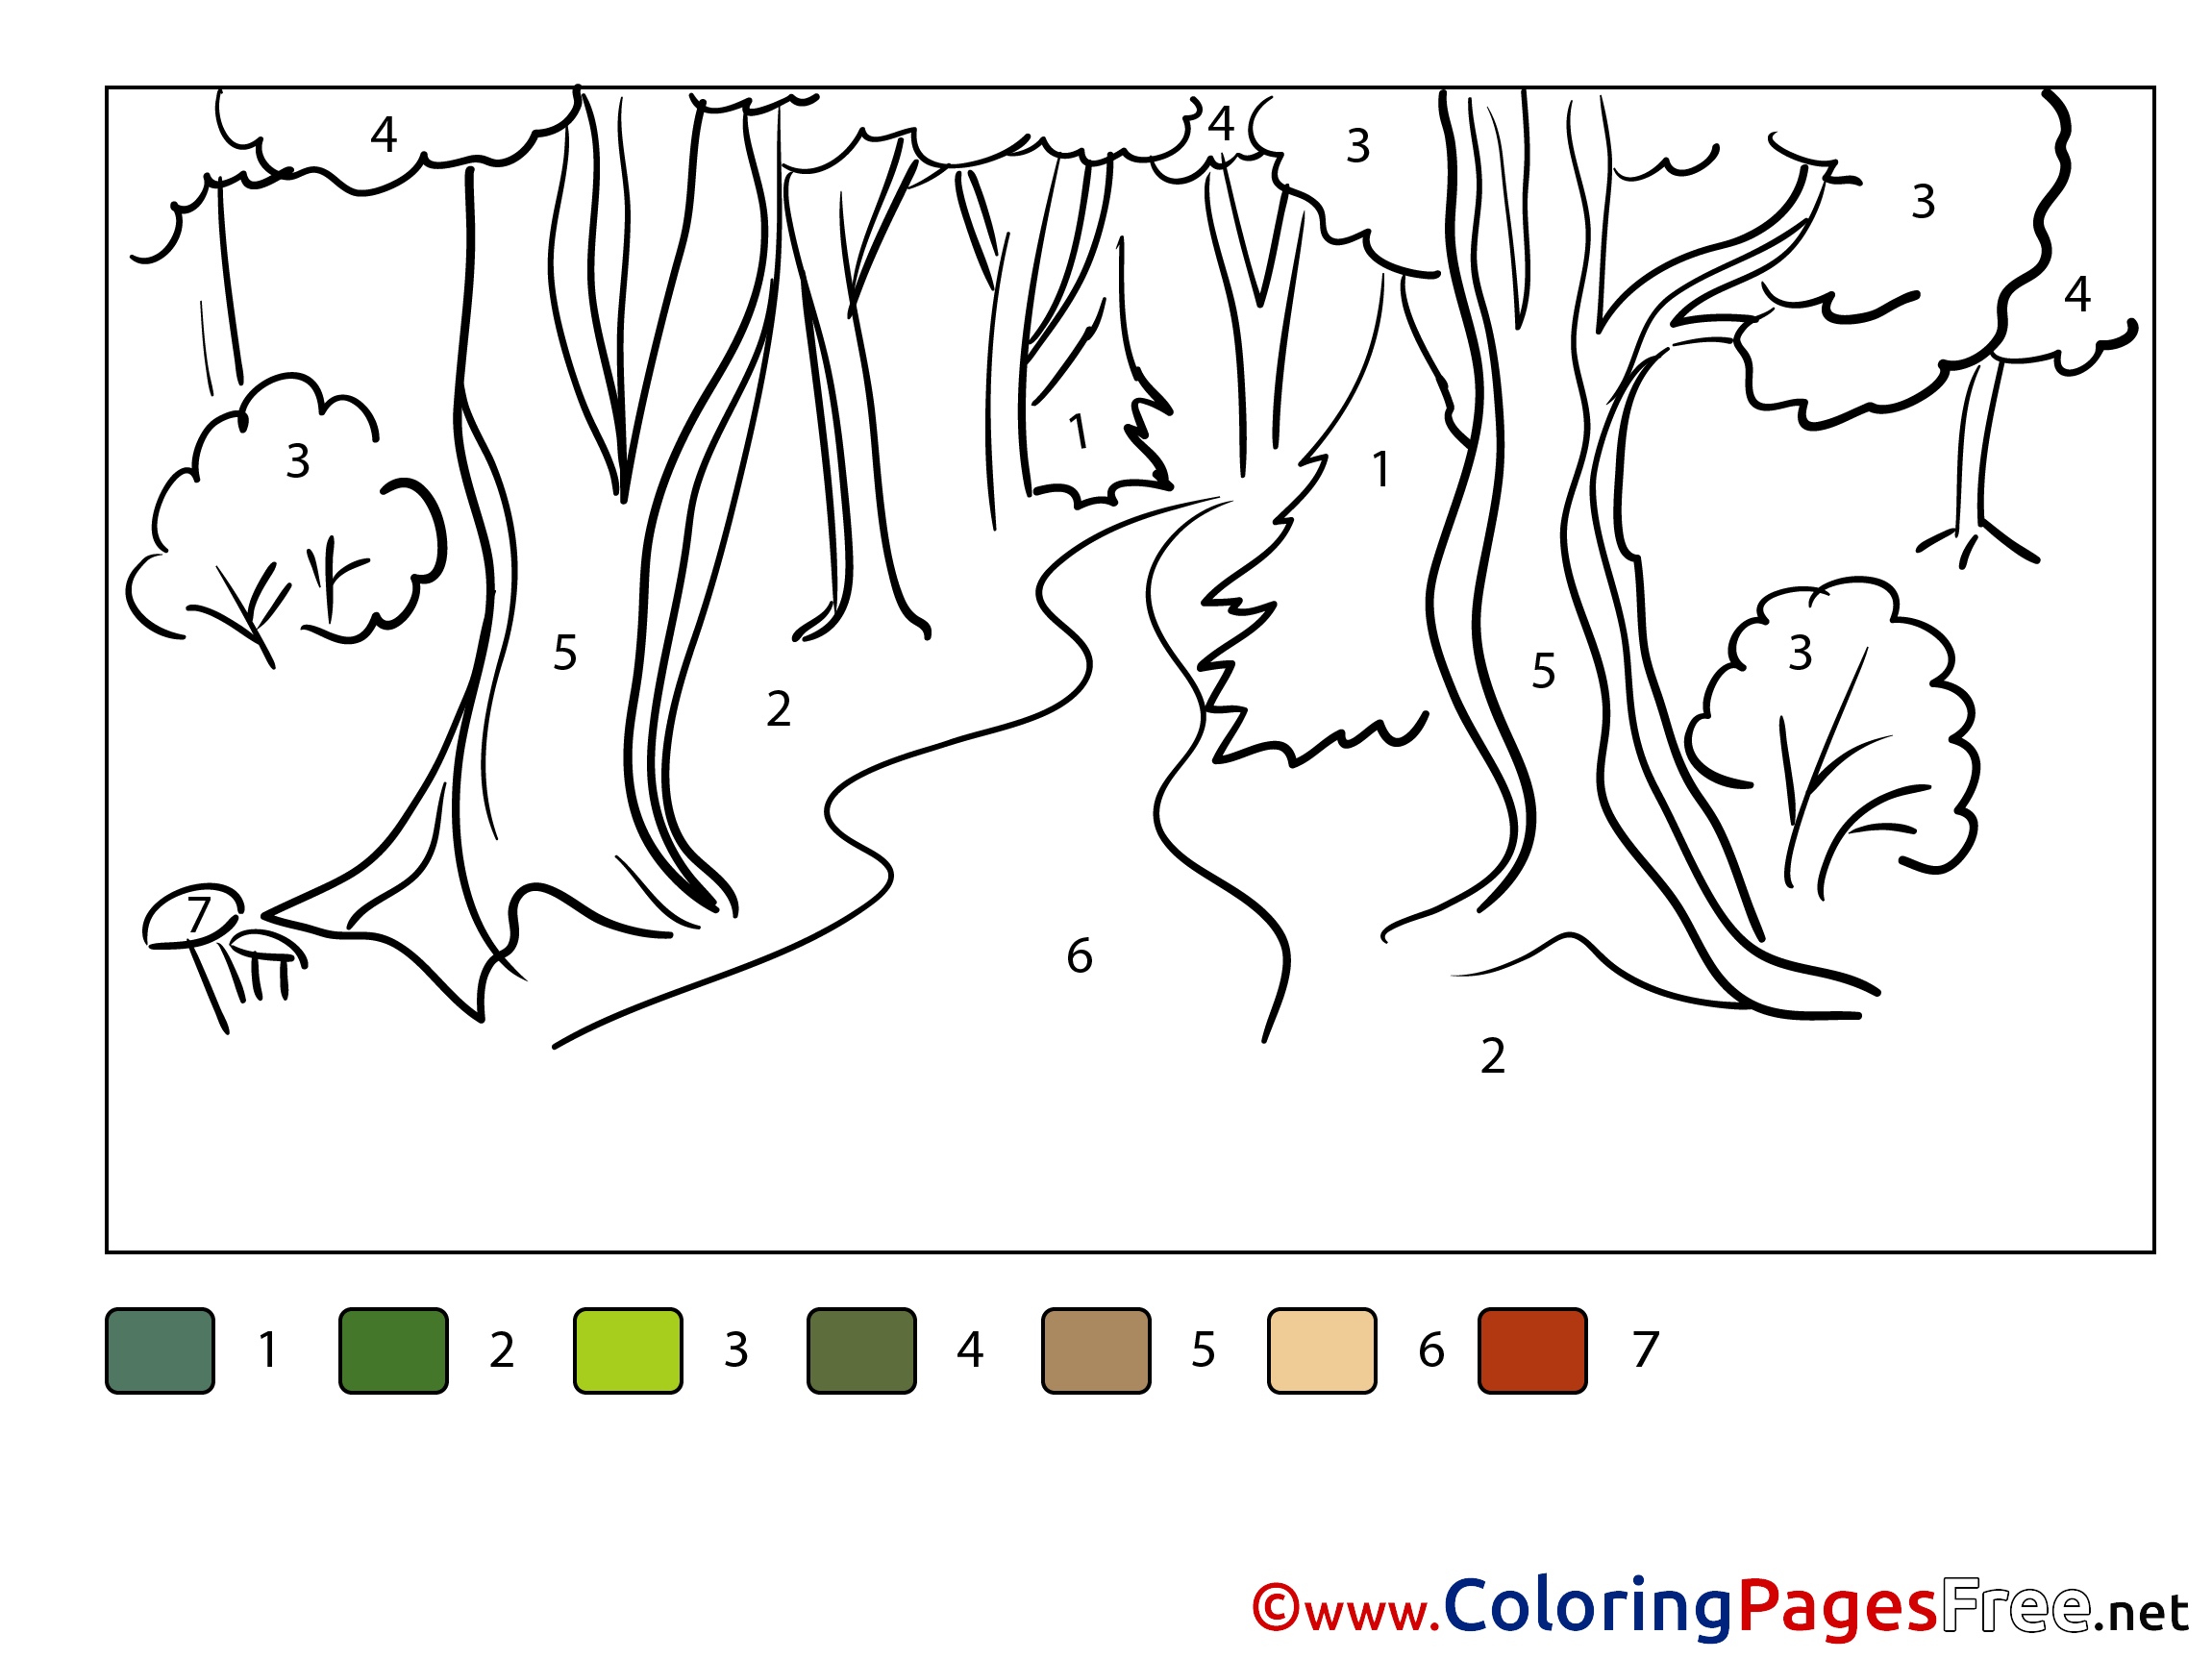 100 number coloring page zebra color by number free printable